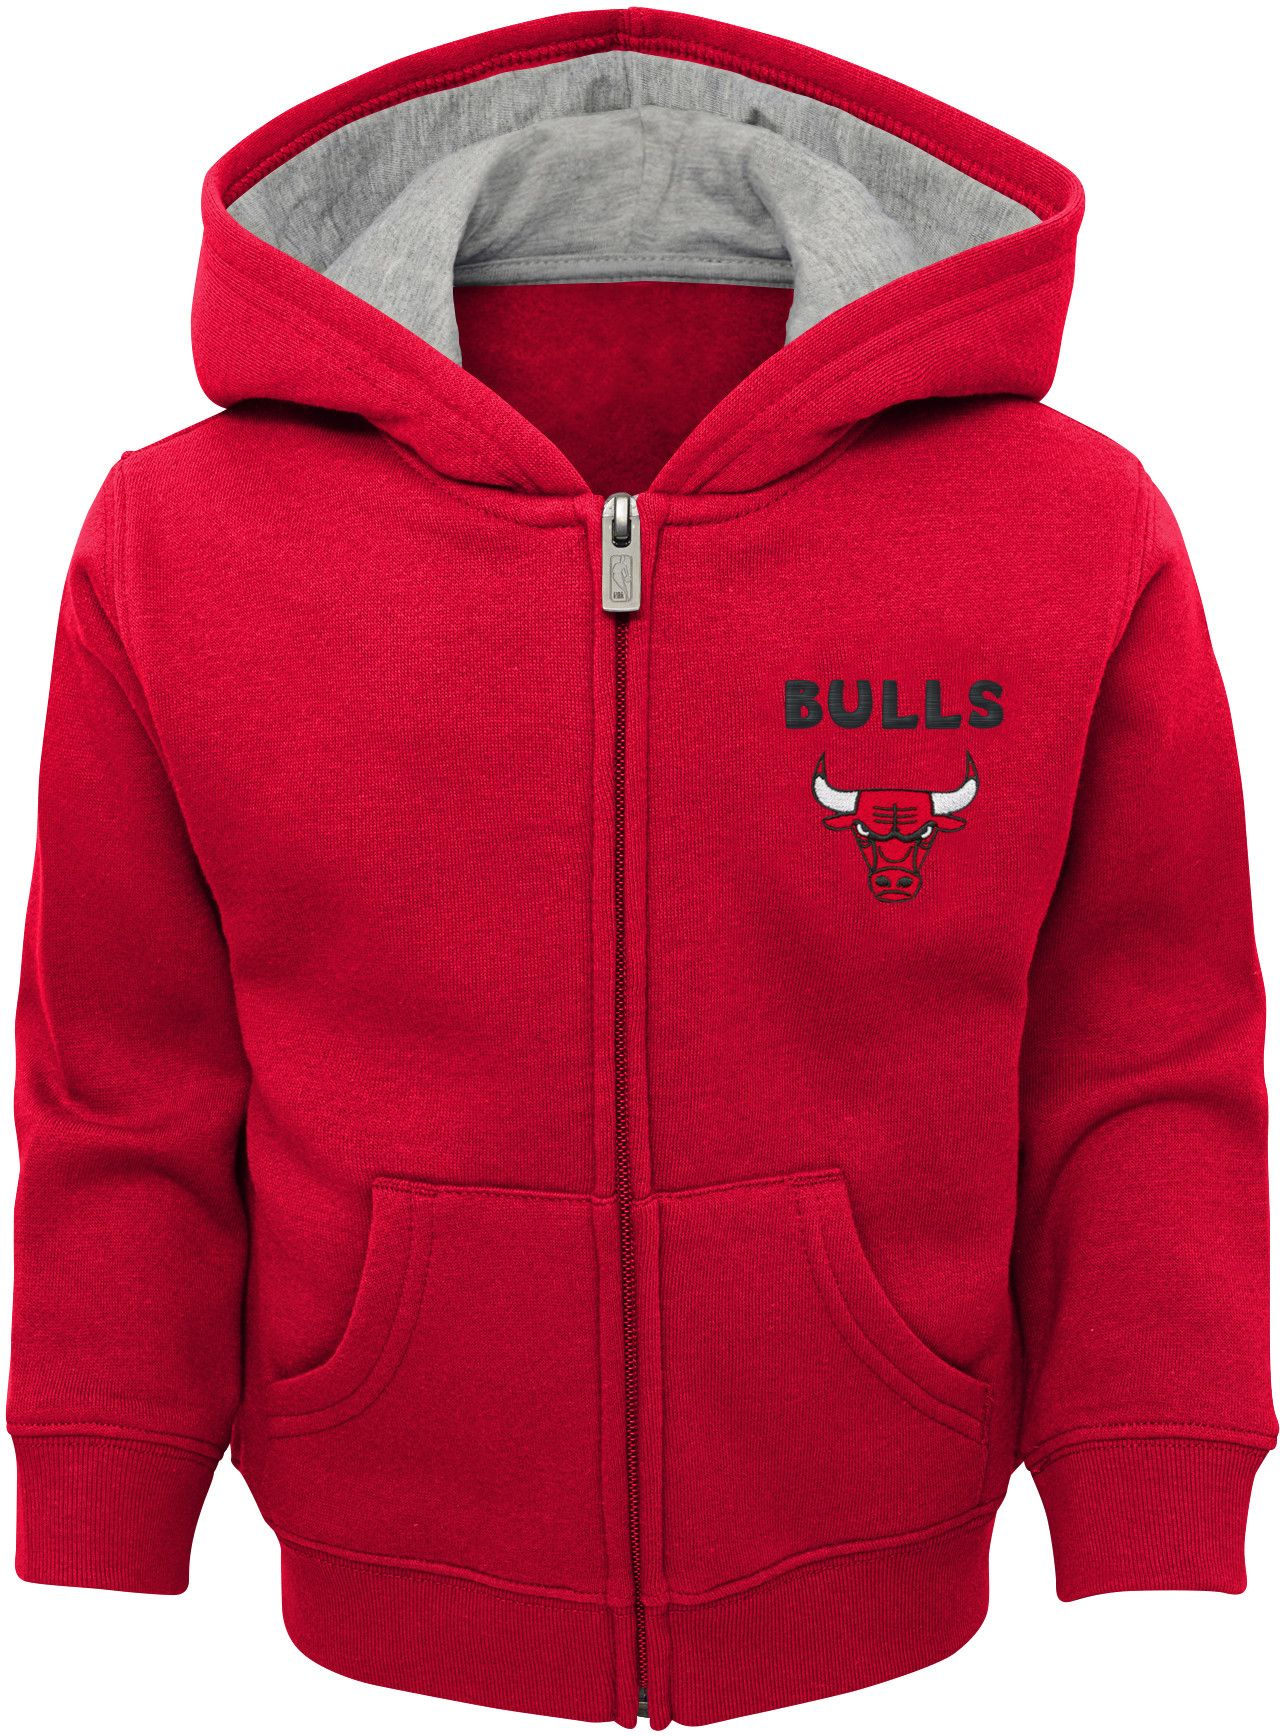 Outerstuff Toddler Chicago Bulls Hoodie Red Chicago Bulls Hoodie Mens Hoodies Casual Full Zip Sweatshirt